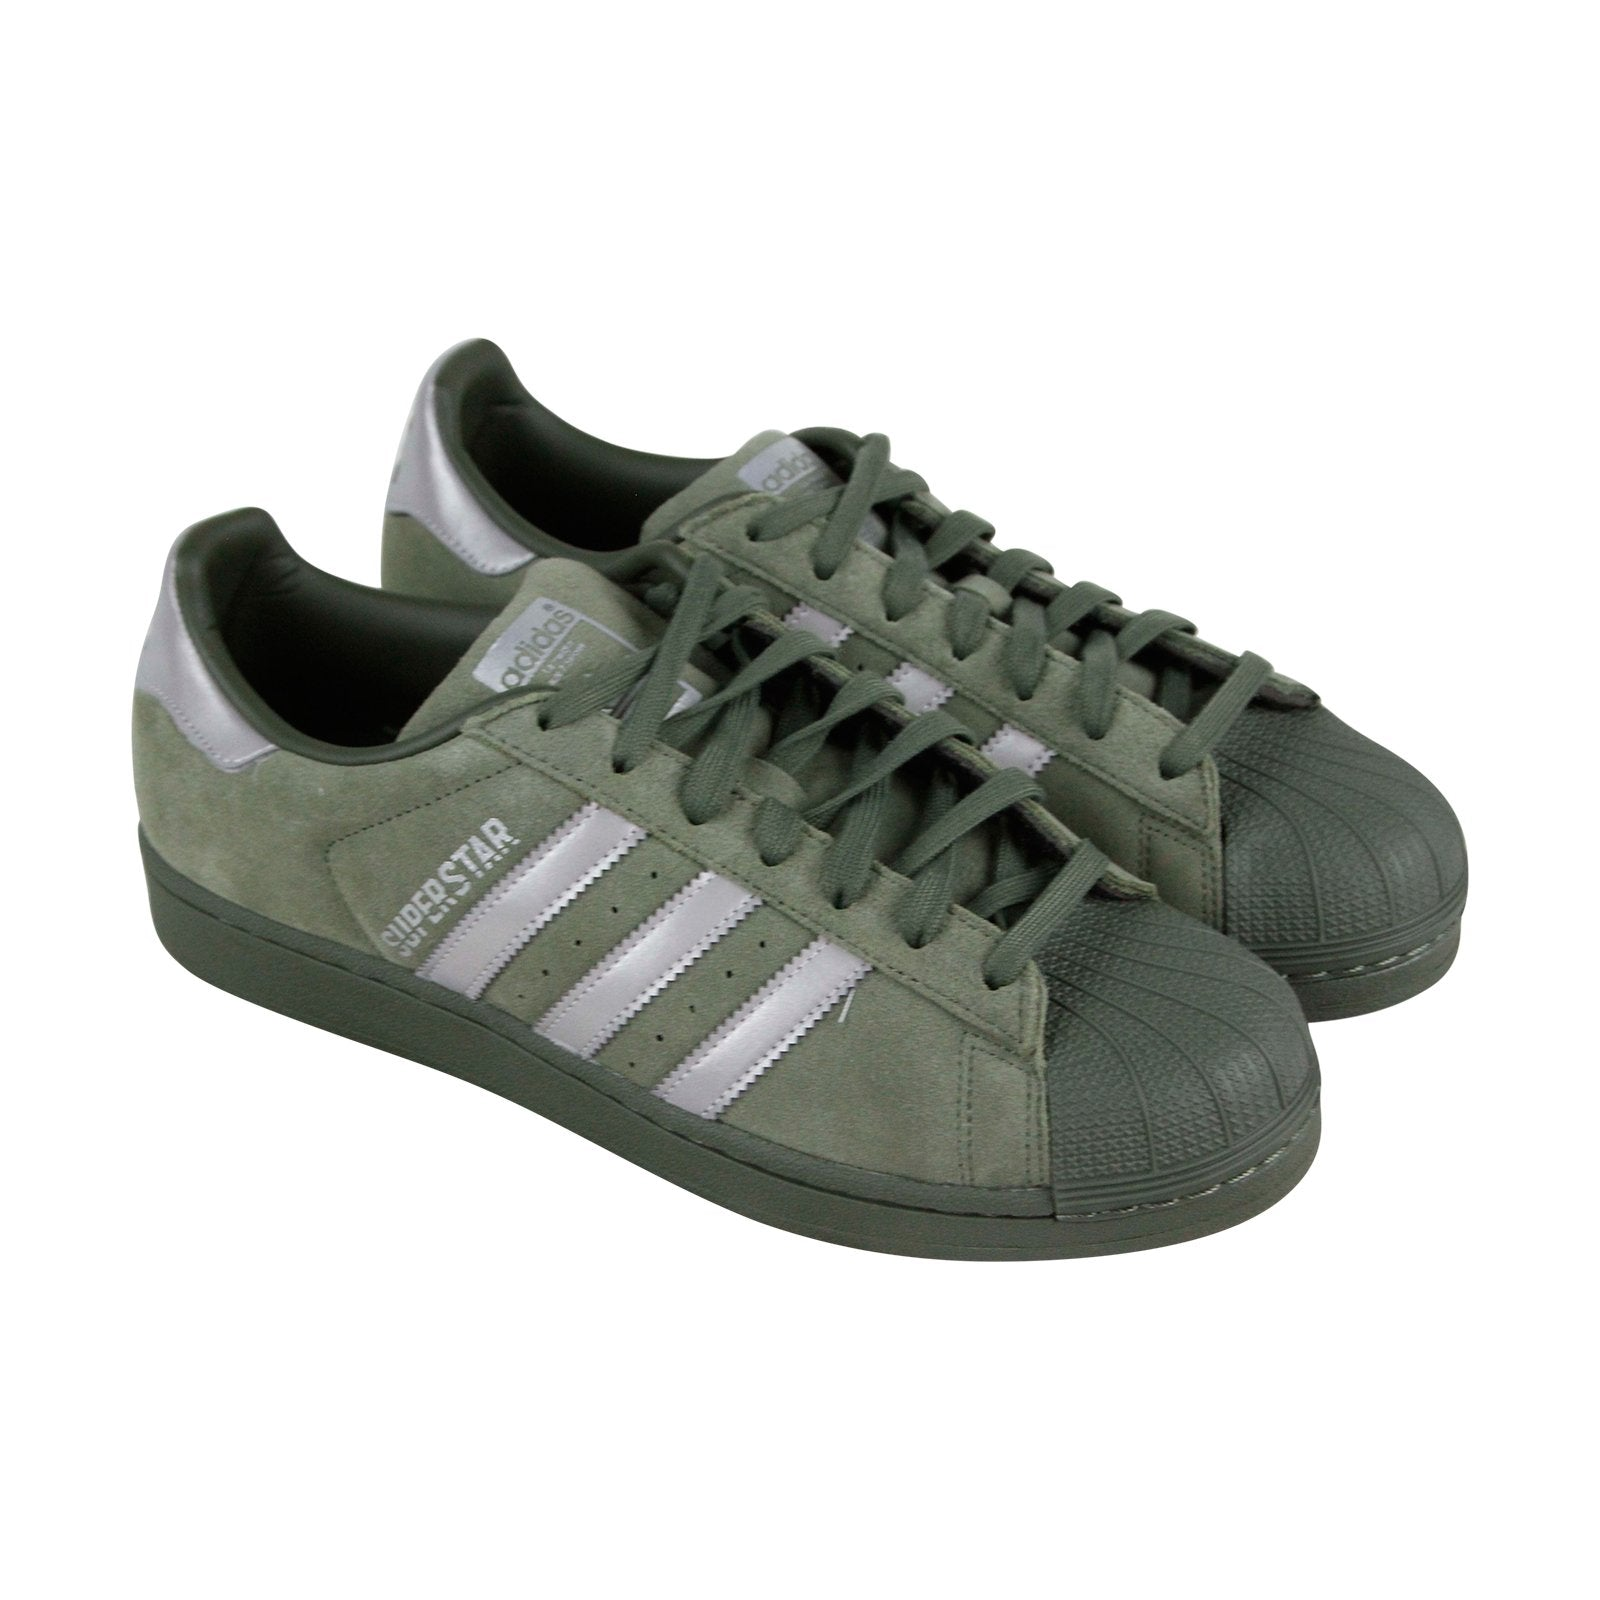 B41988 Mens Green Suede Lace